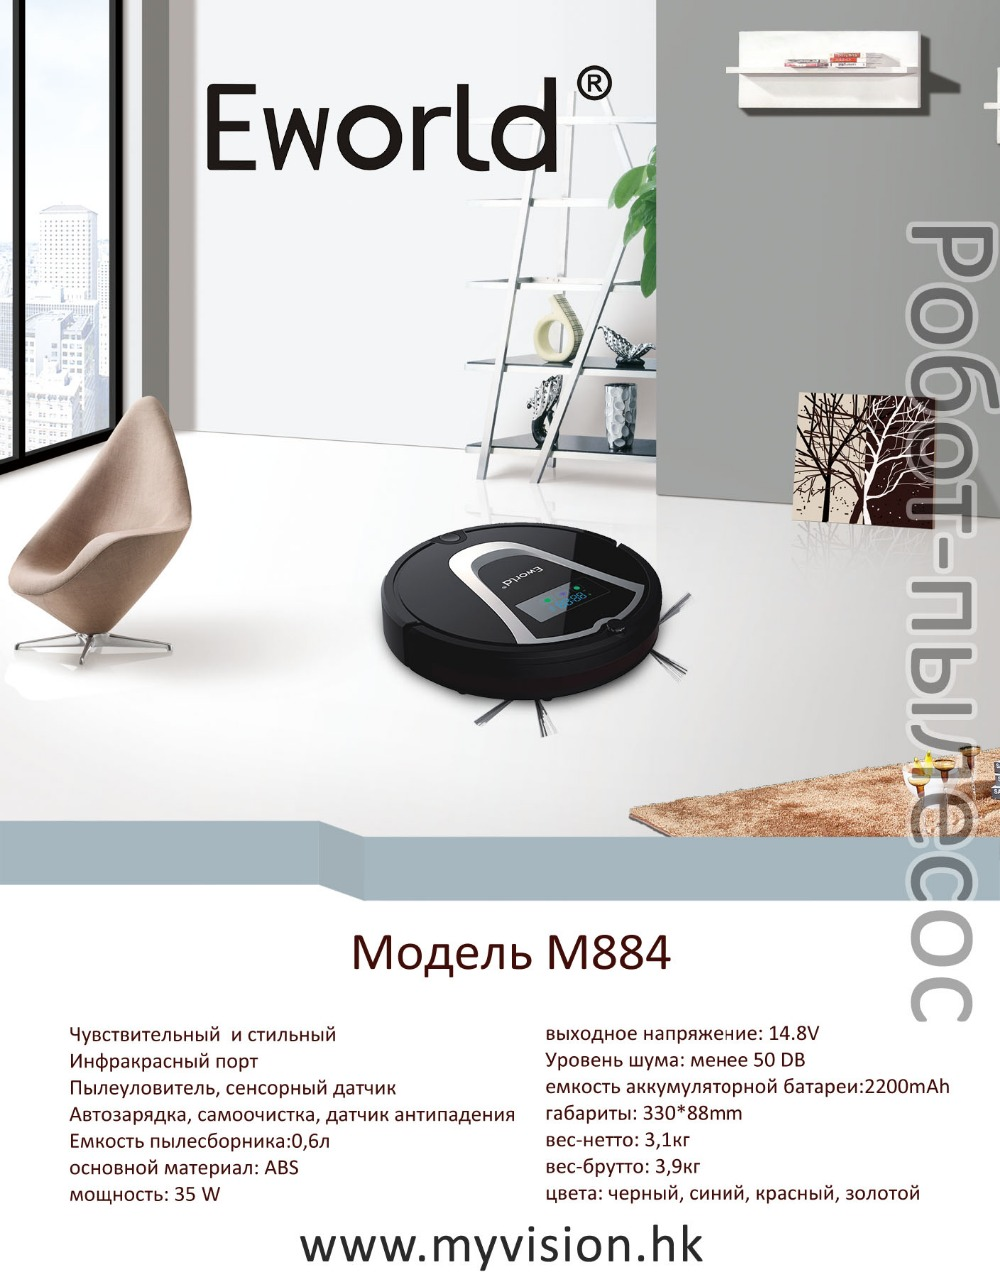 Eworld M884 Mop Robot Vacuum Cleaner for Home,  HEPA Filter,Sensor,Remote Control Self Charge ROBOT Electric Sweeper баскетбольные кроссовки nike air jordan air jordan retro hi og laser aj1 705289 100